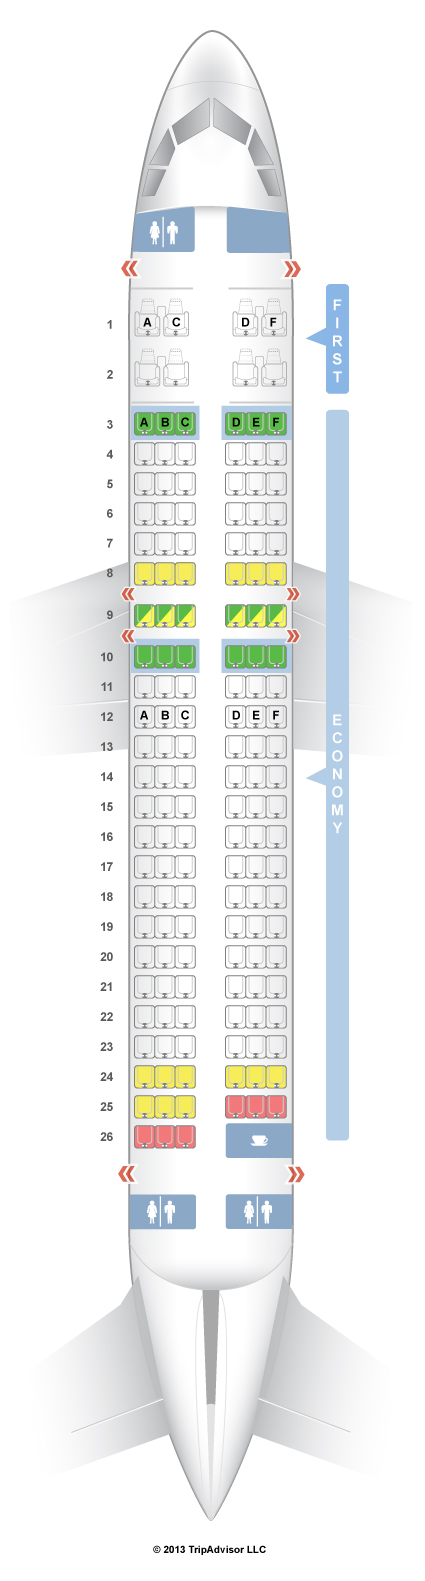 Seatguru seat map virgin america airbus   also travel rh pinterest